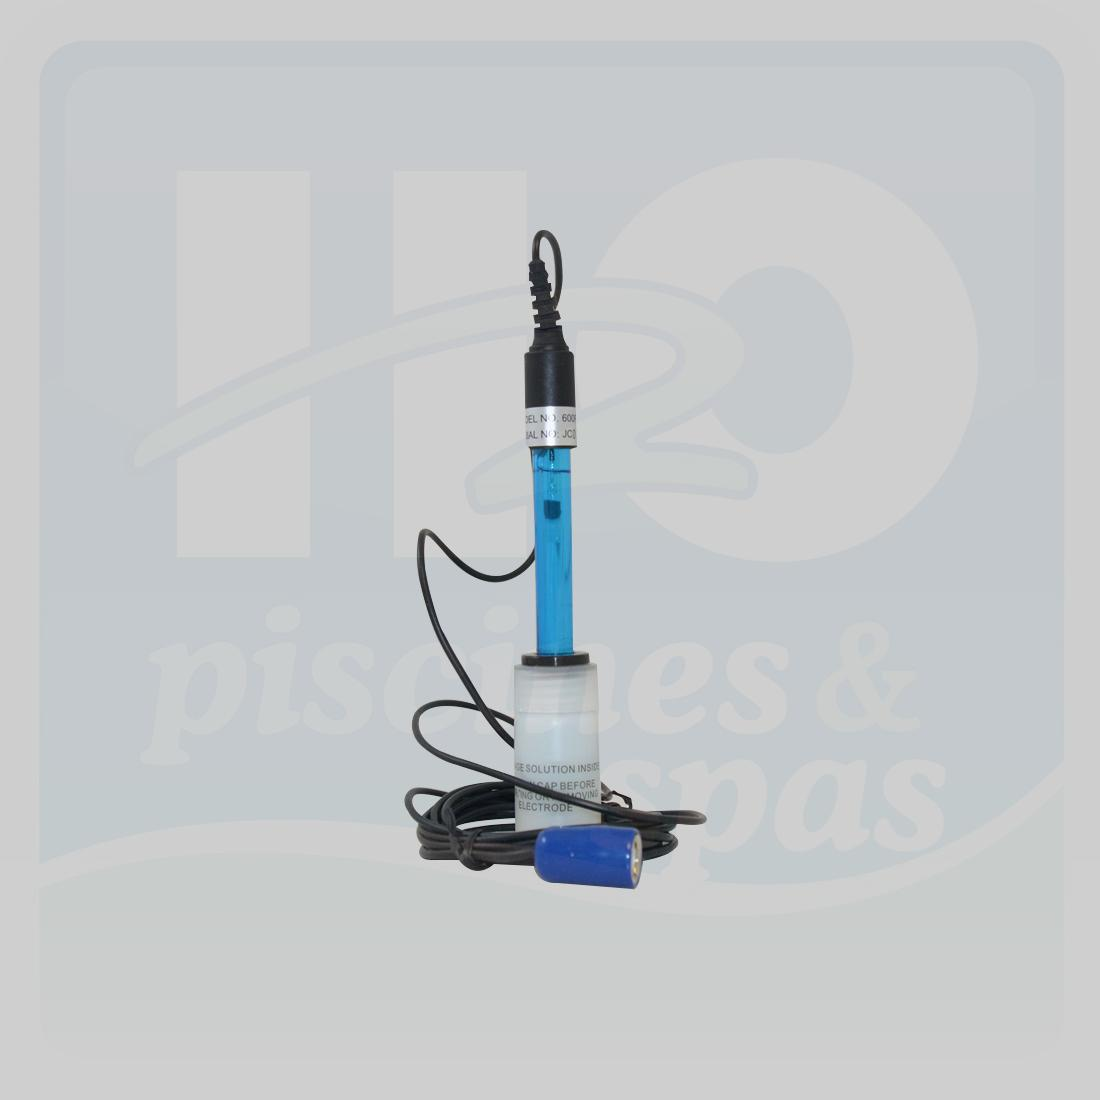 Sonde ph pour pompe doseuse pool technologie just regul for Sonde pour piscine a debordement